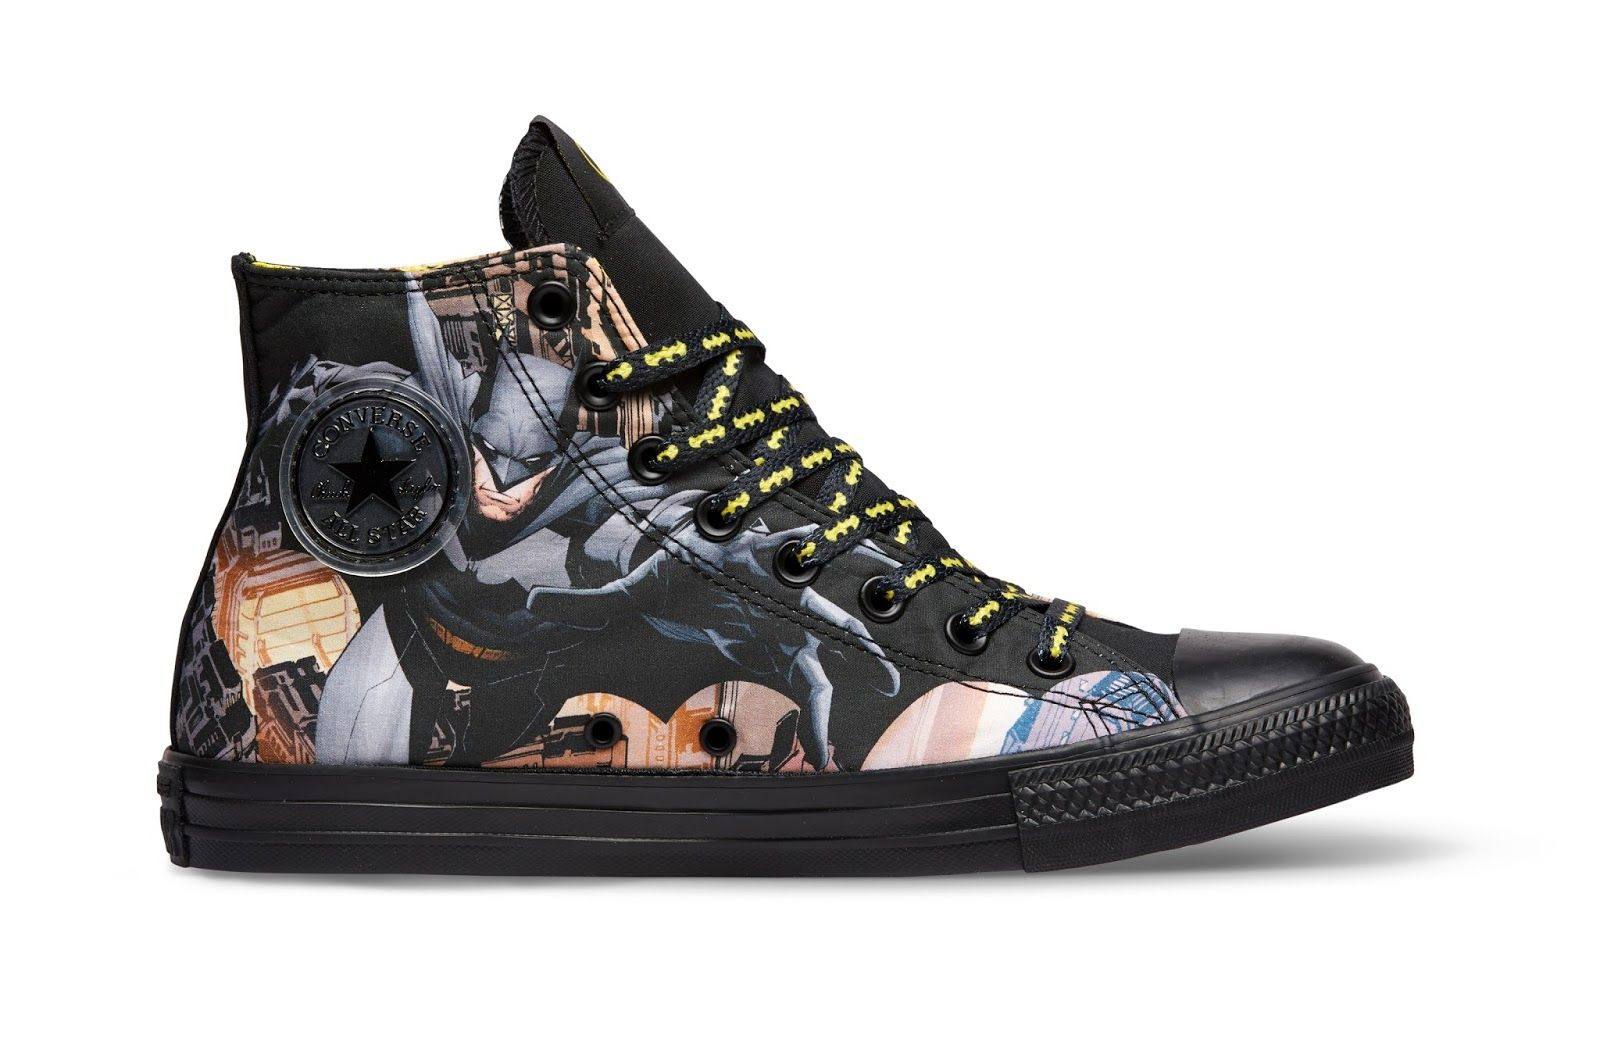 Converse All Star Shoes Acdc Limited Edition